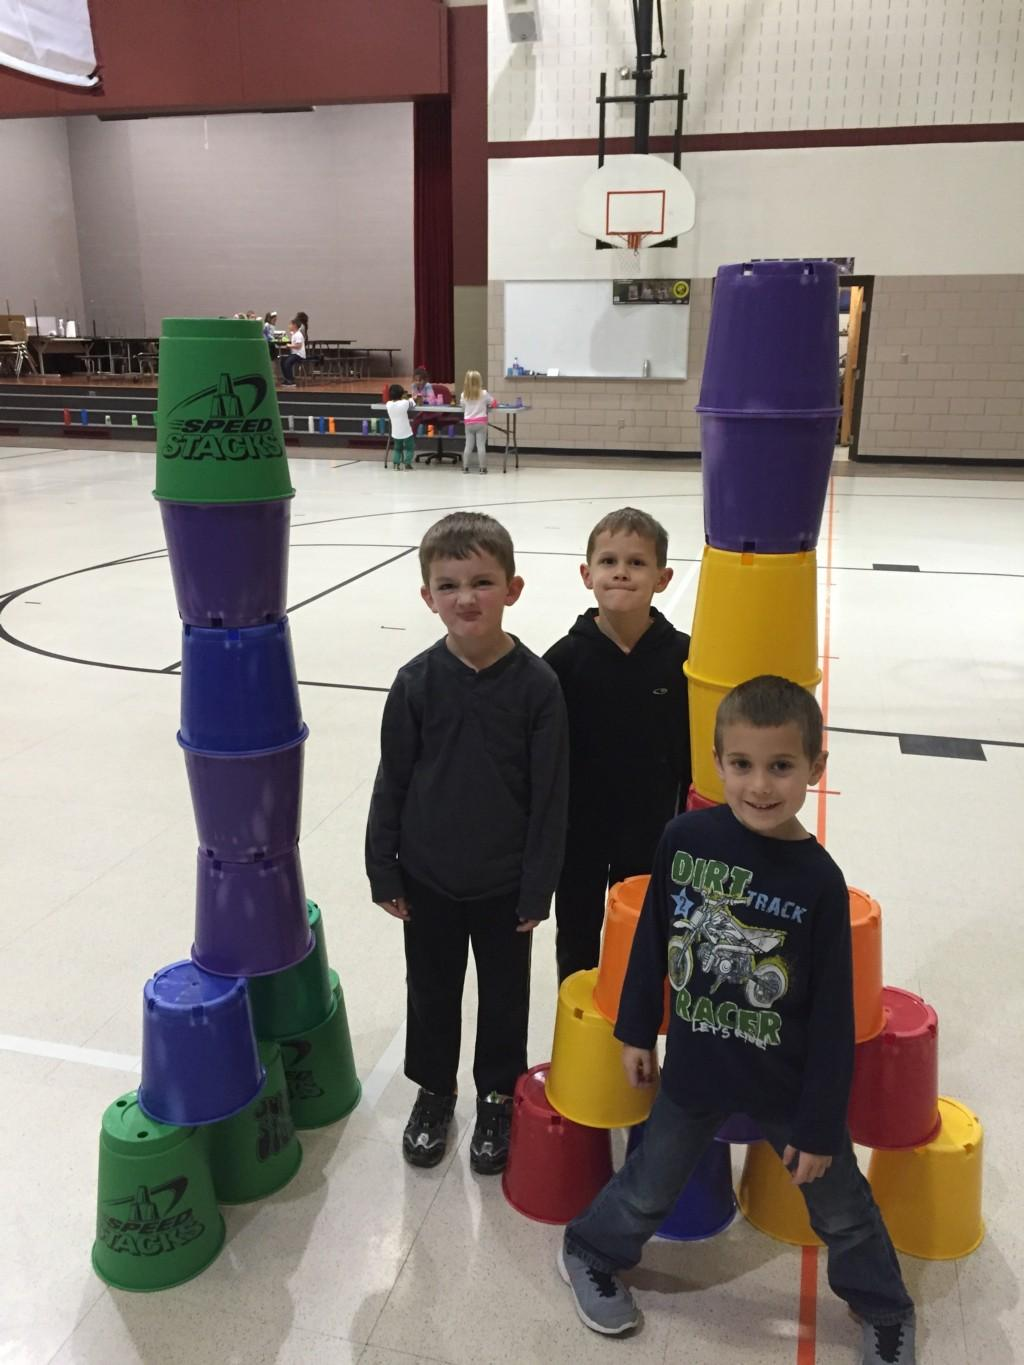 students show off two stacks of pails